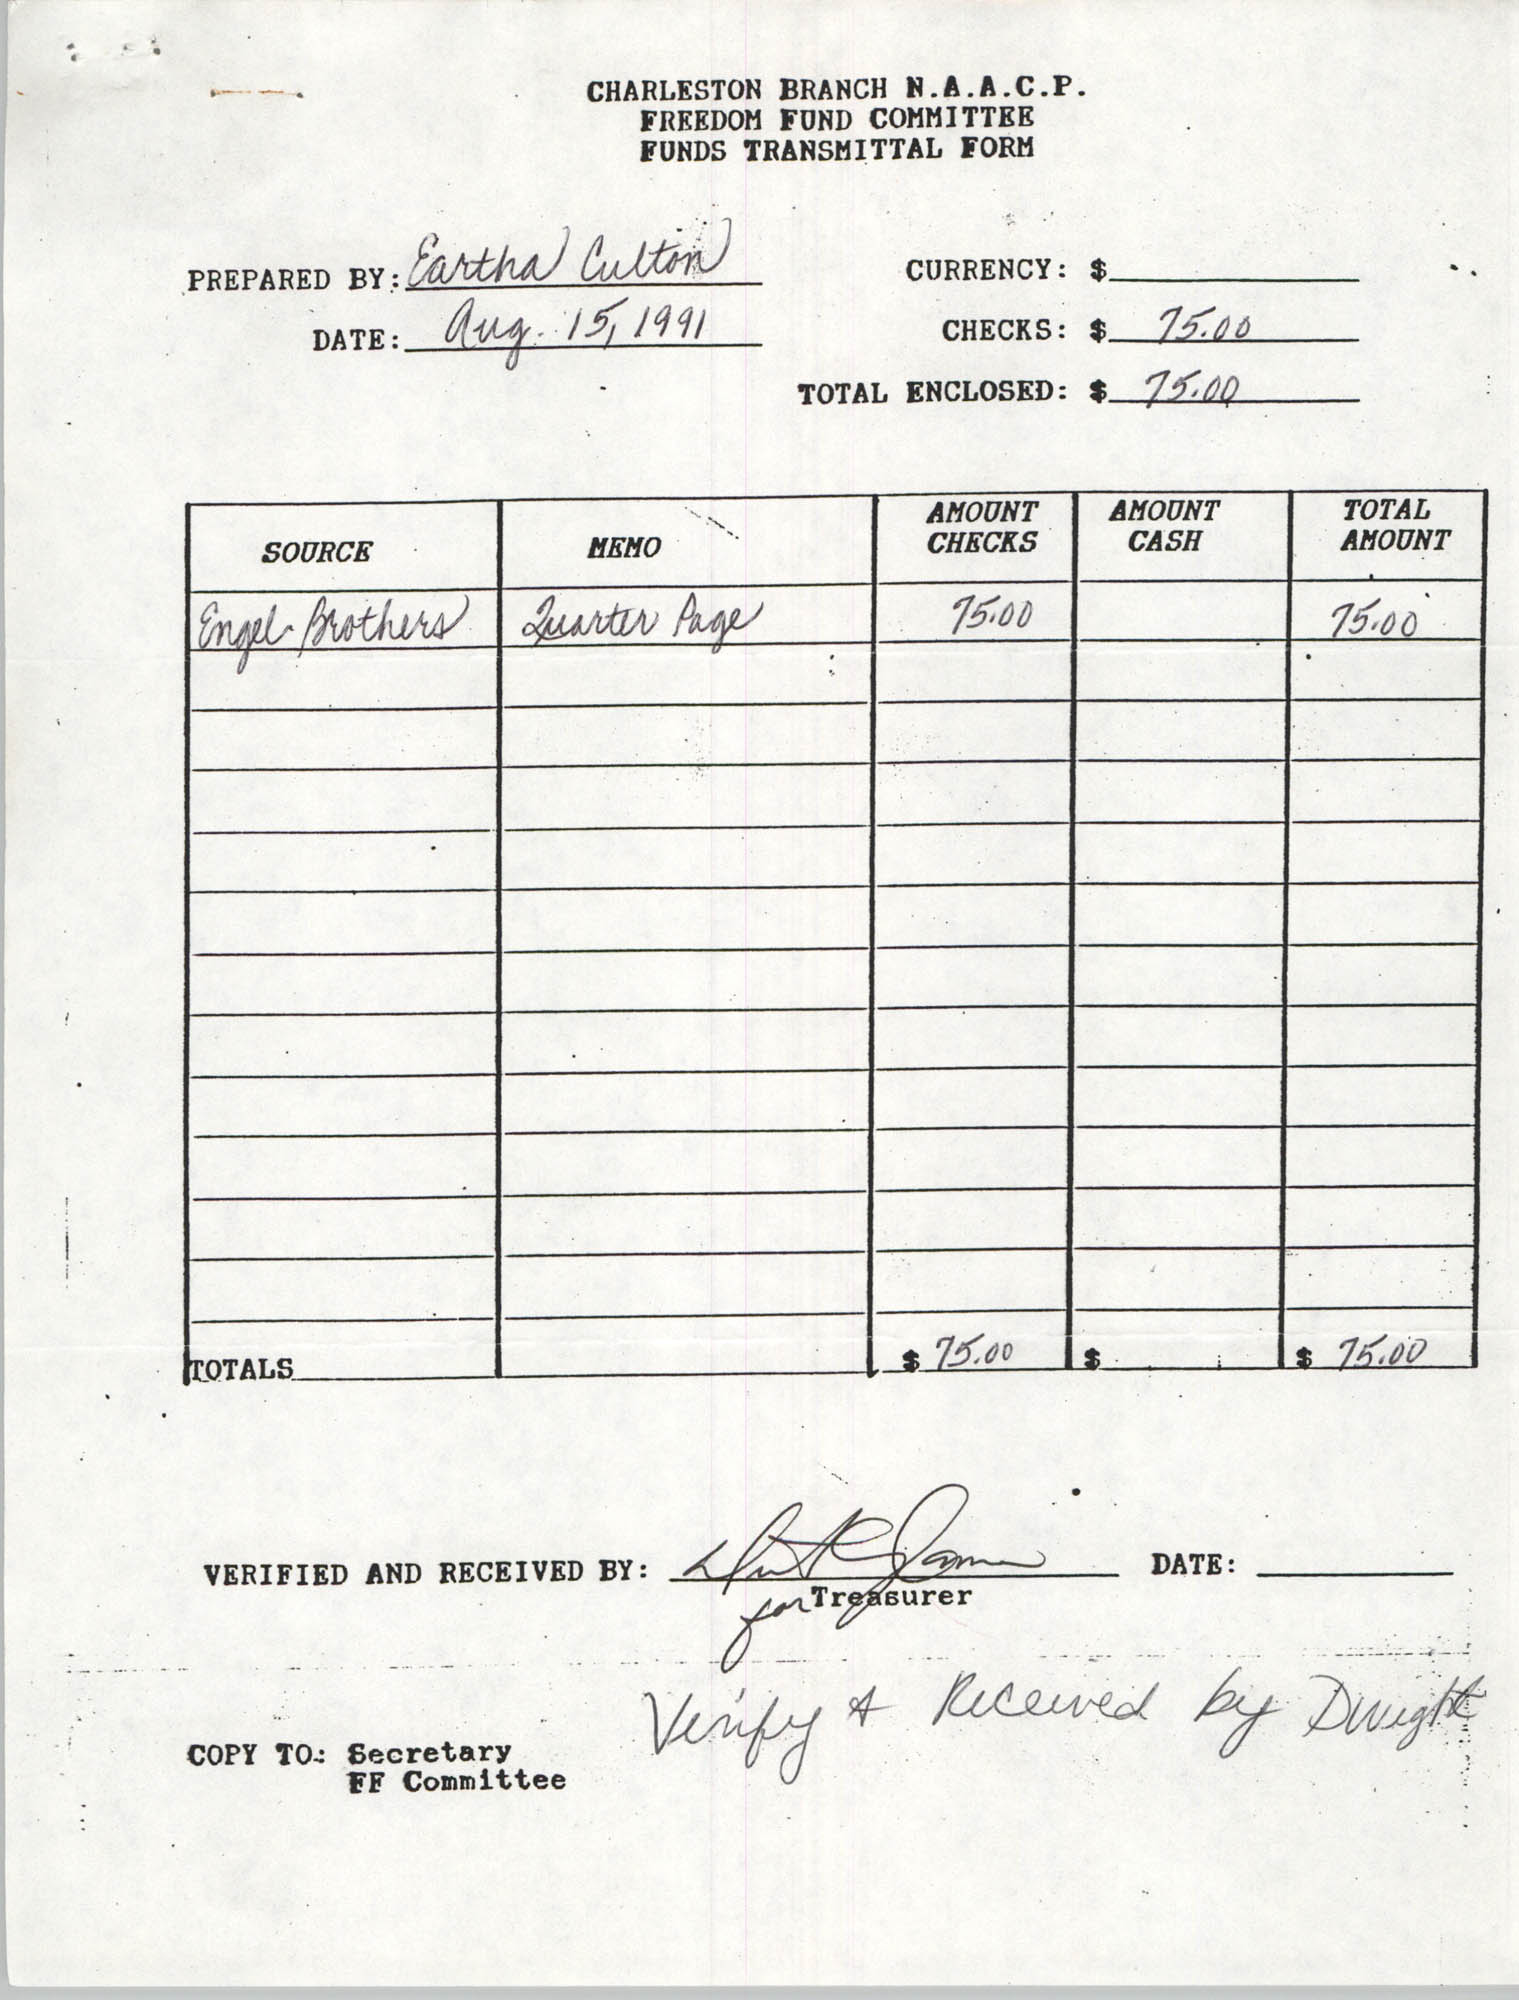 Charleston Branch of the NAACP Funds Transmittal Forms, August 1991, Page 10